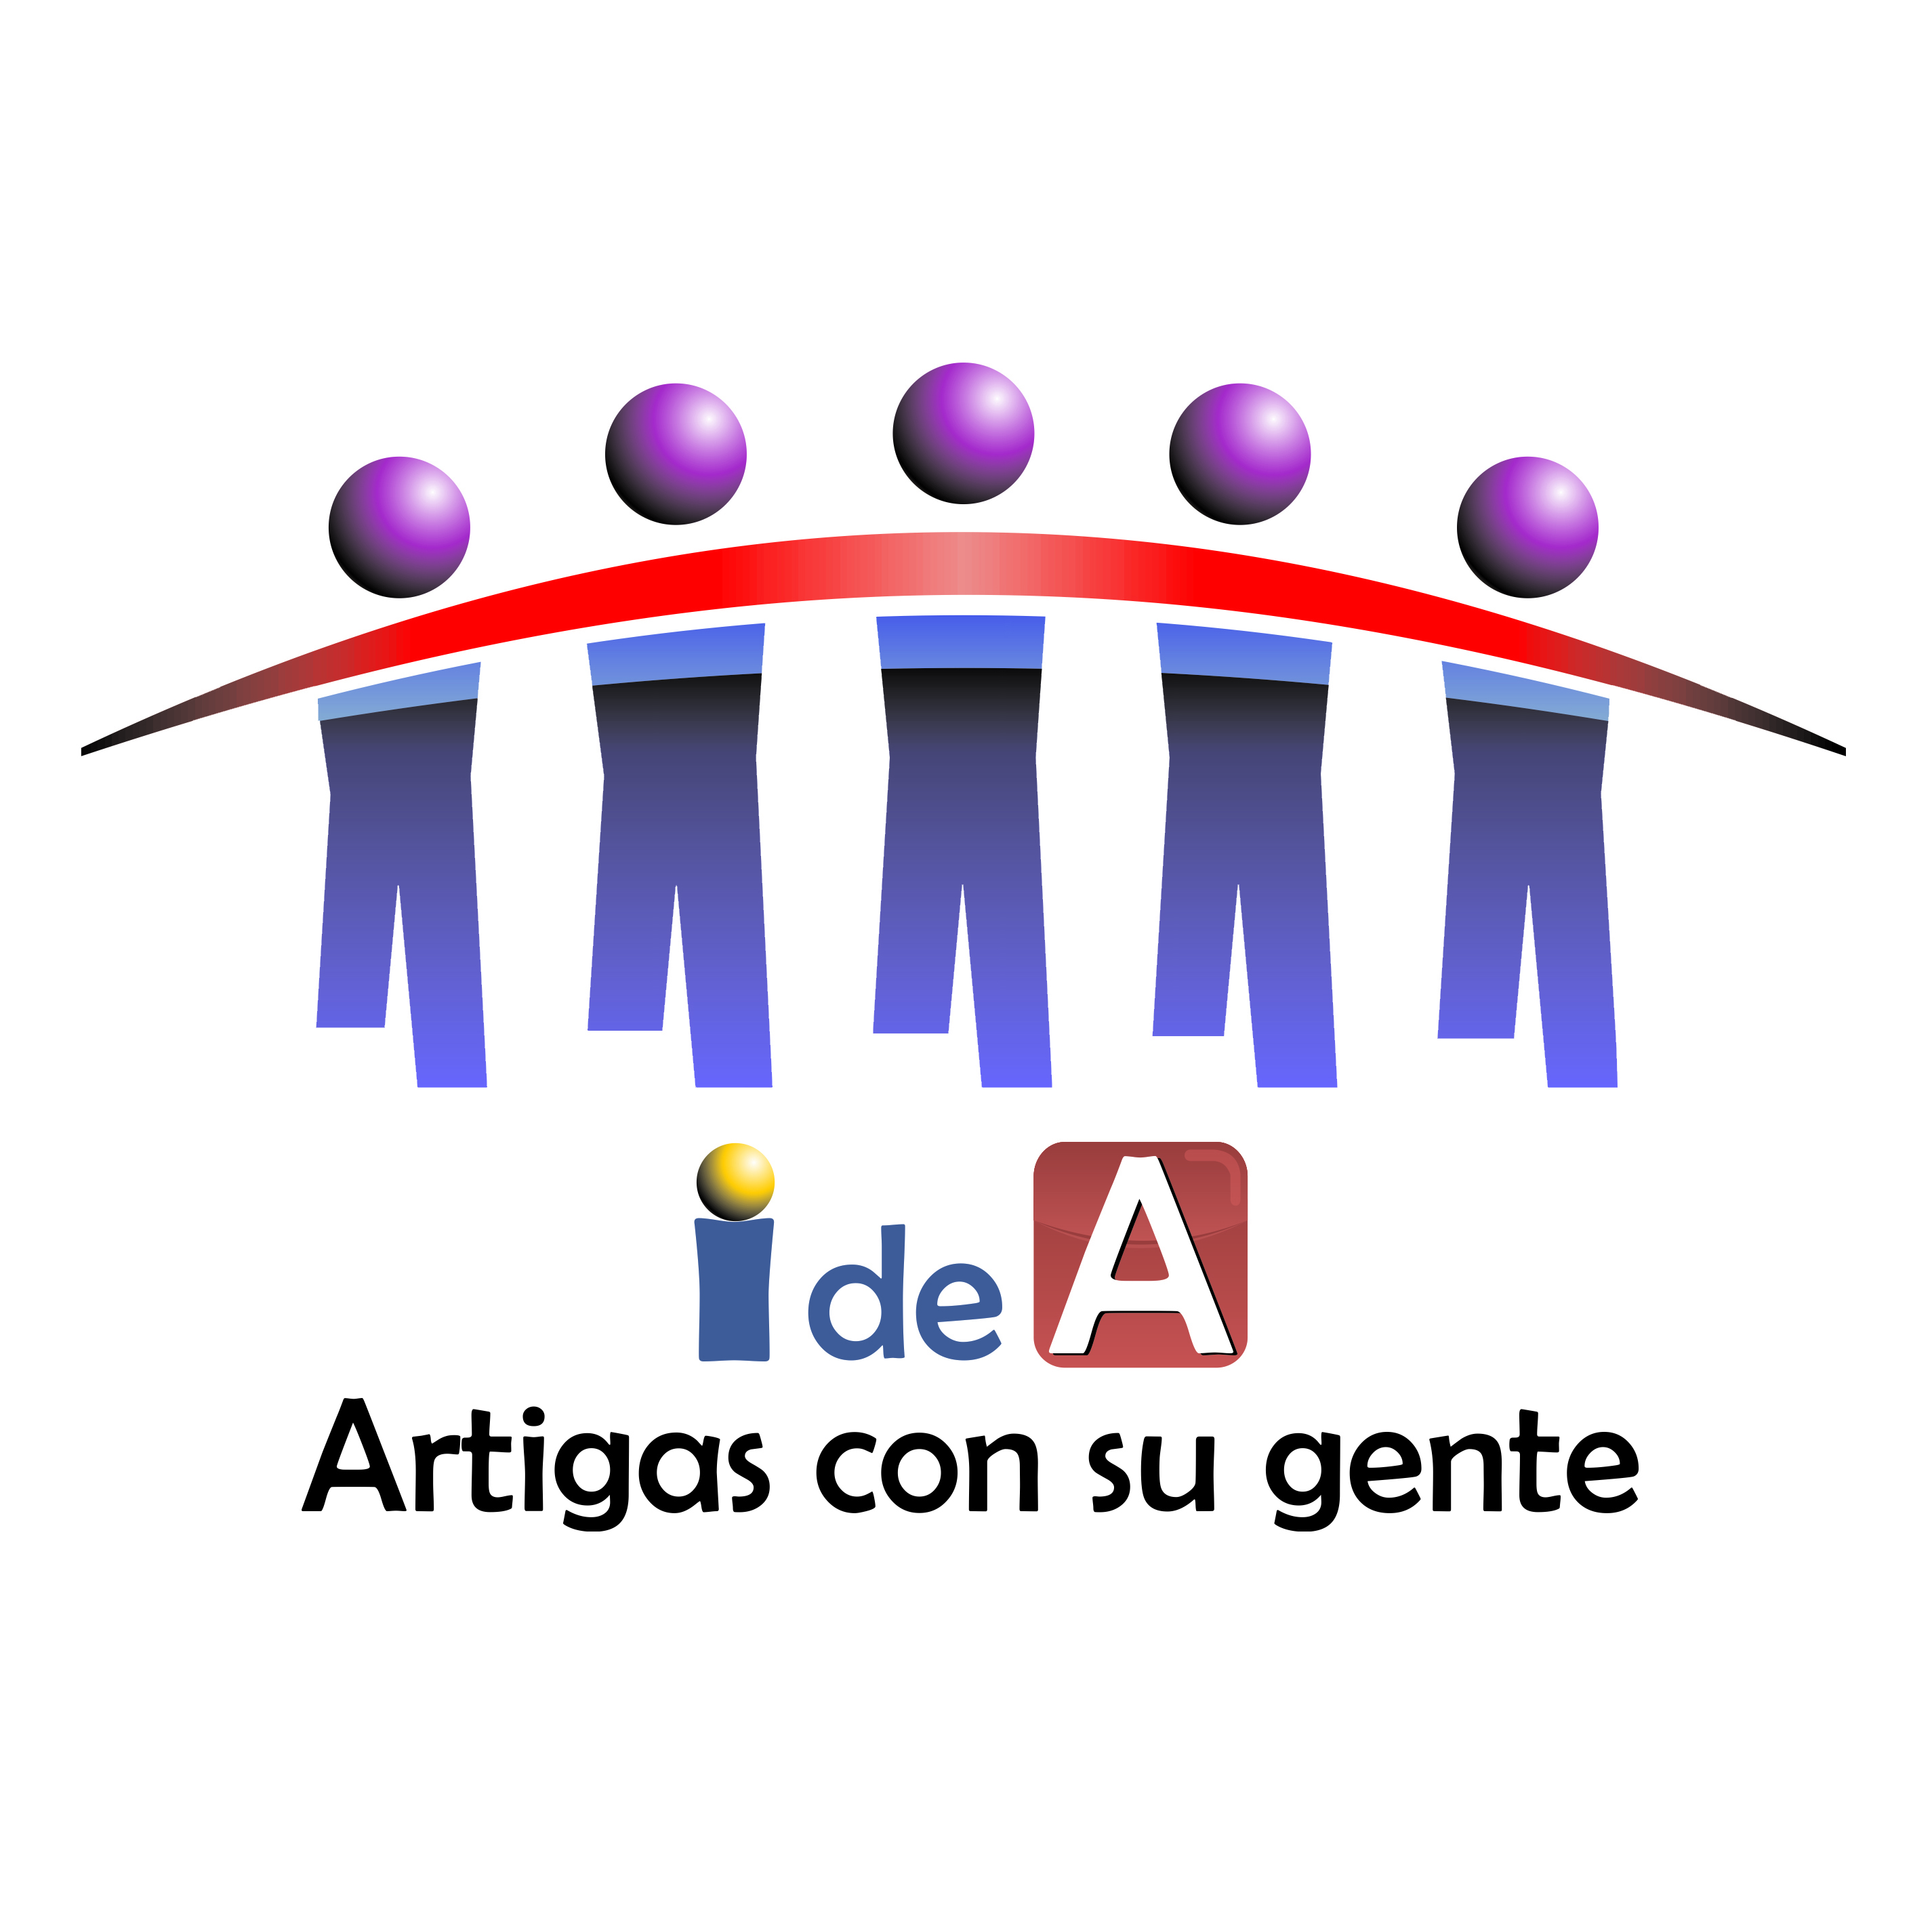 Intendencia de Artigas